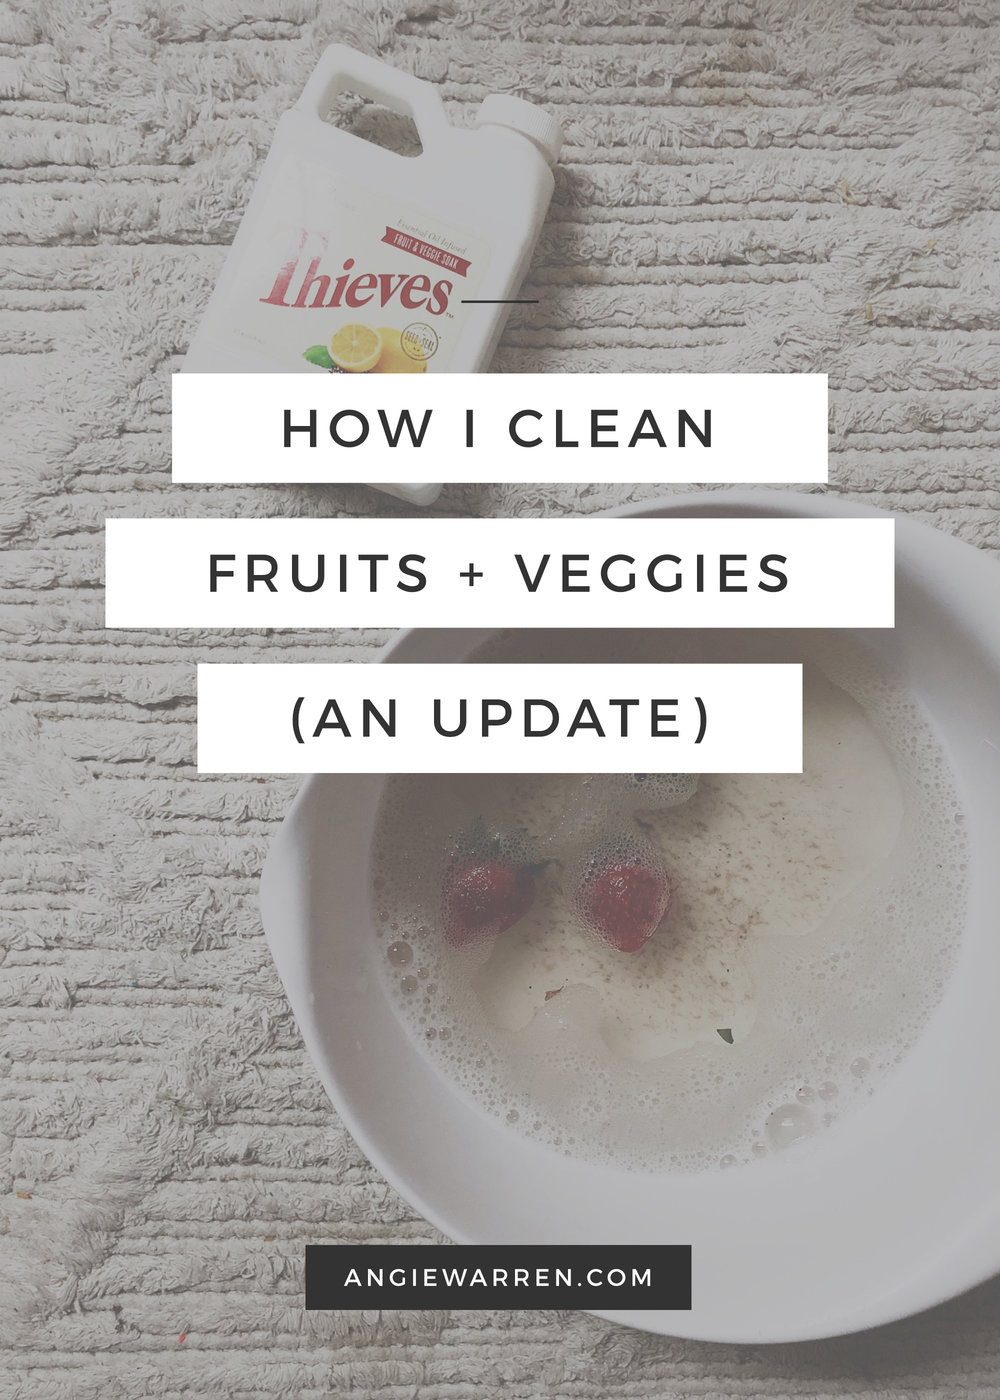 Natural Fruit + Veggie Cleaner / www.angiewarren.com